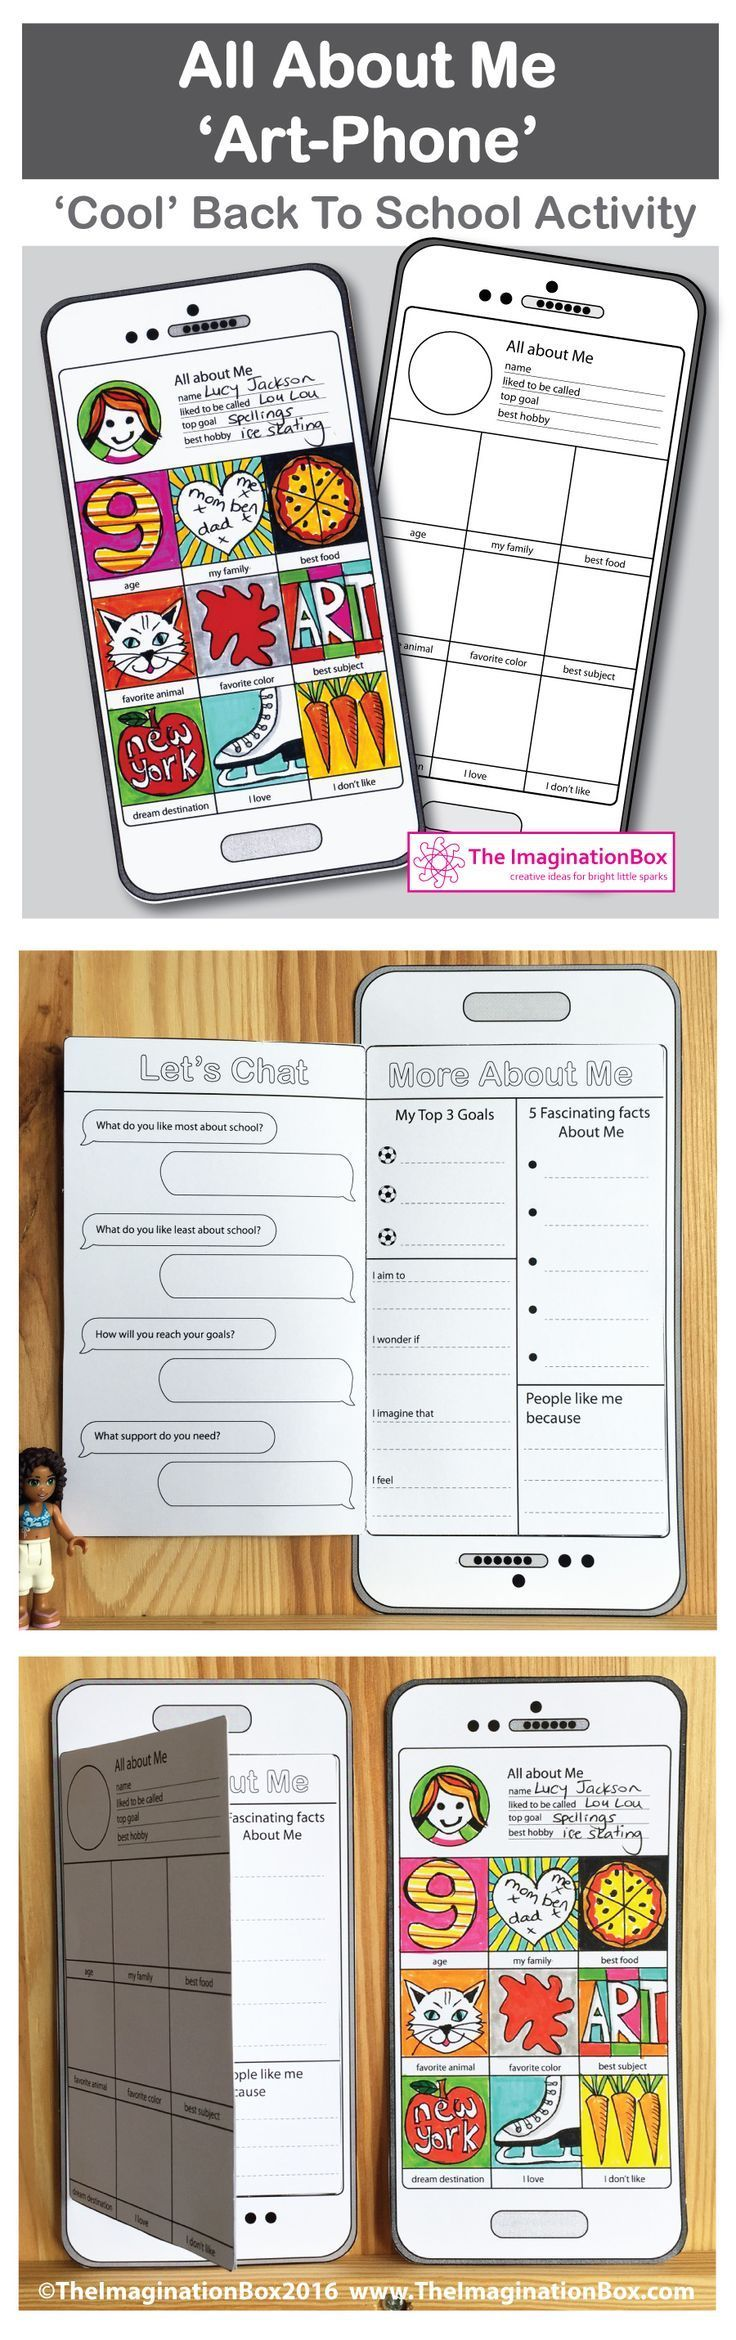 Engage children creatively with this Instagram style, 'tech' mobile phone/tablet 'All About Me' first week back, art and writing activity.   by The Imagination Box